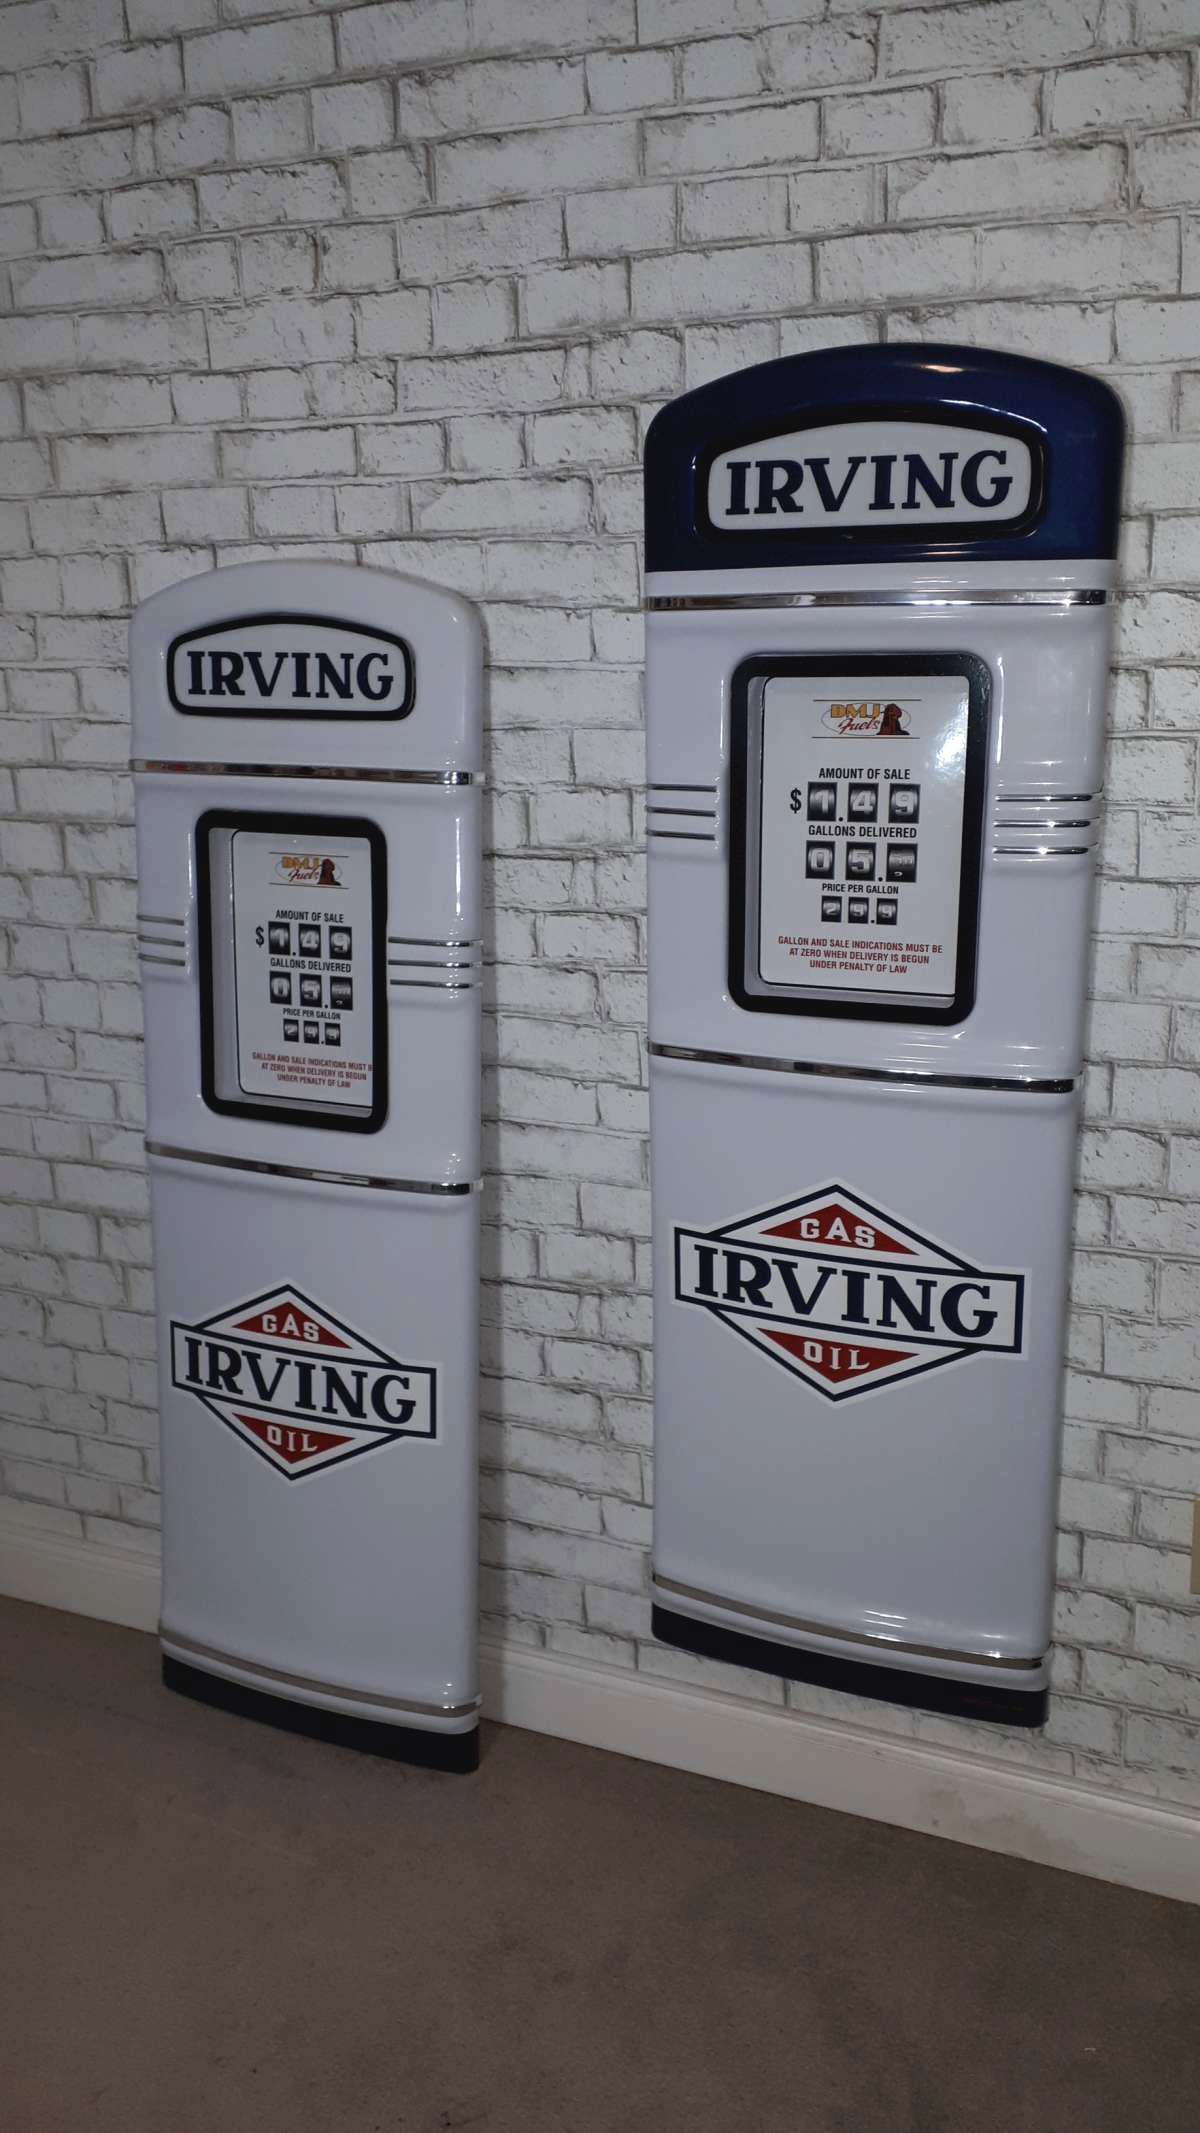 Irving gas pumps